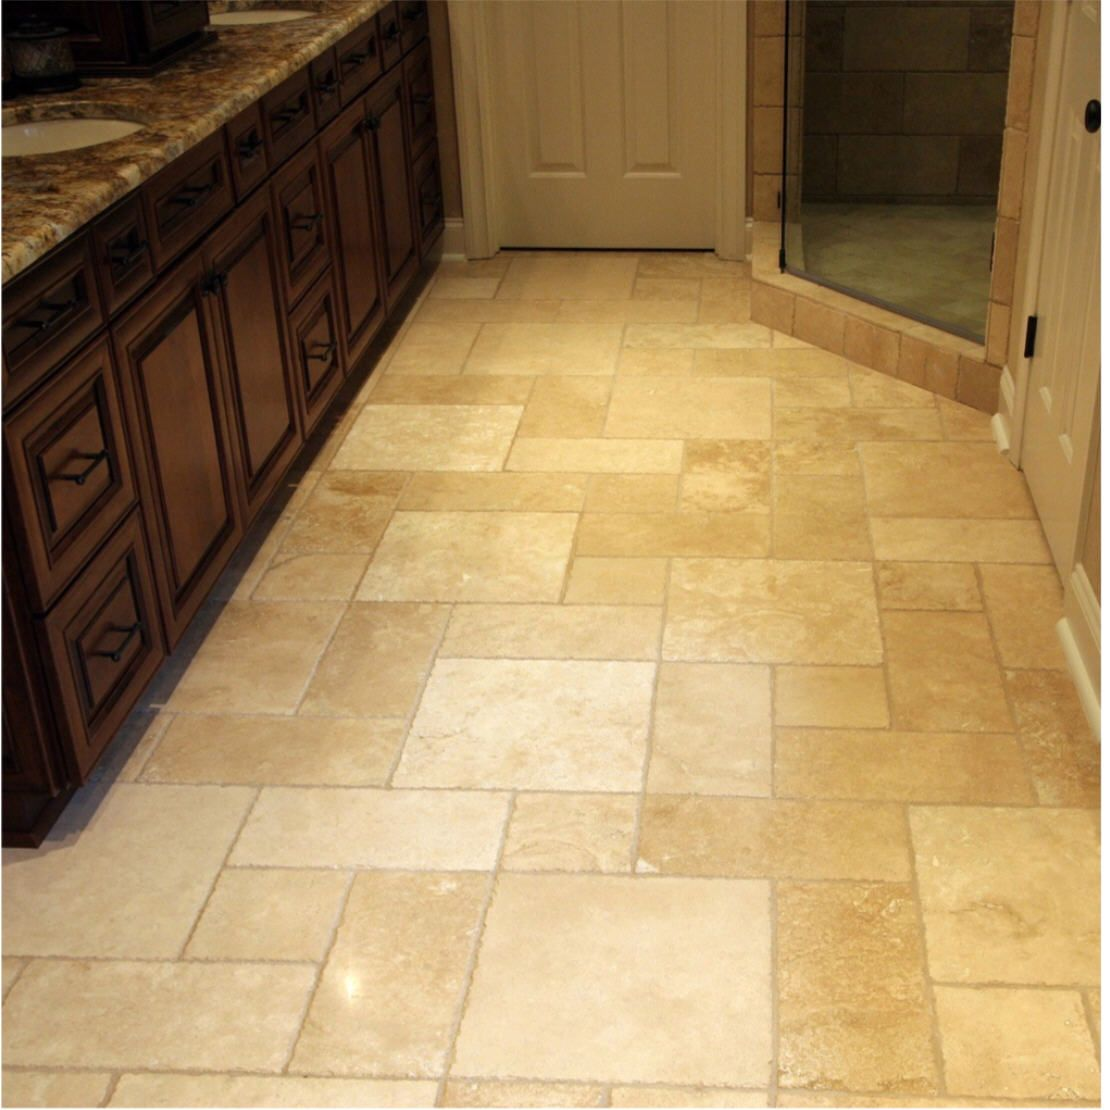 Travertine tile floor pattern called hopscotch affordable design travertine tile floor pattern called hopscotch doublecrazyfo Choice Image